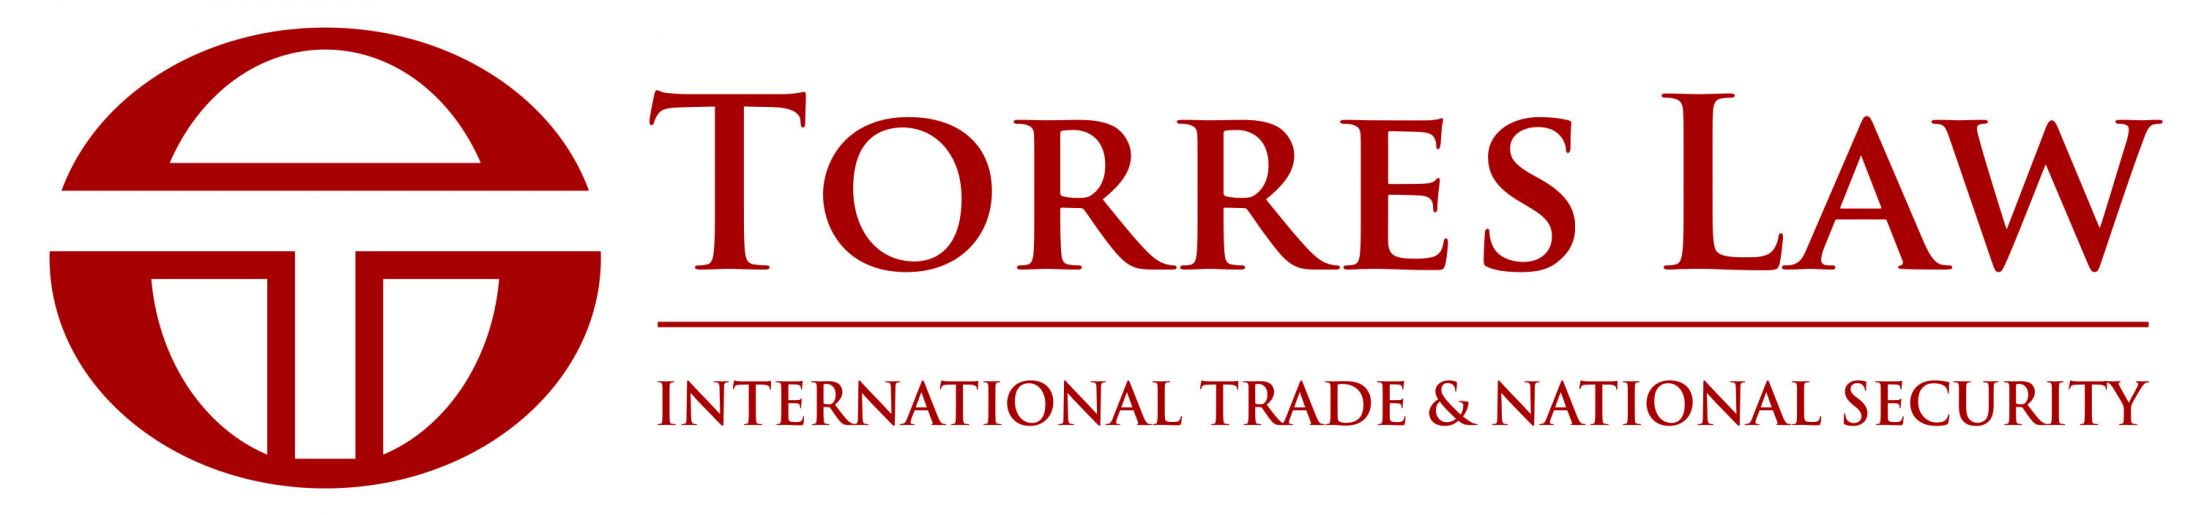 Torres Law - Trade & National Security Logo